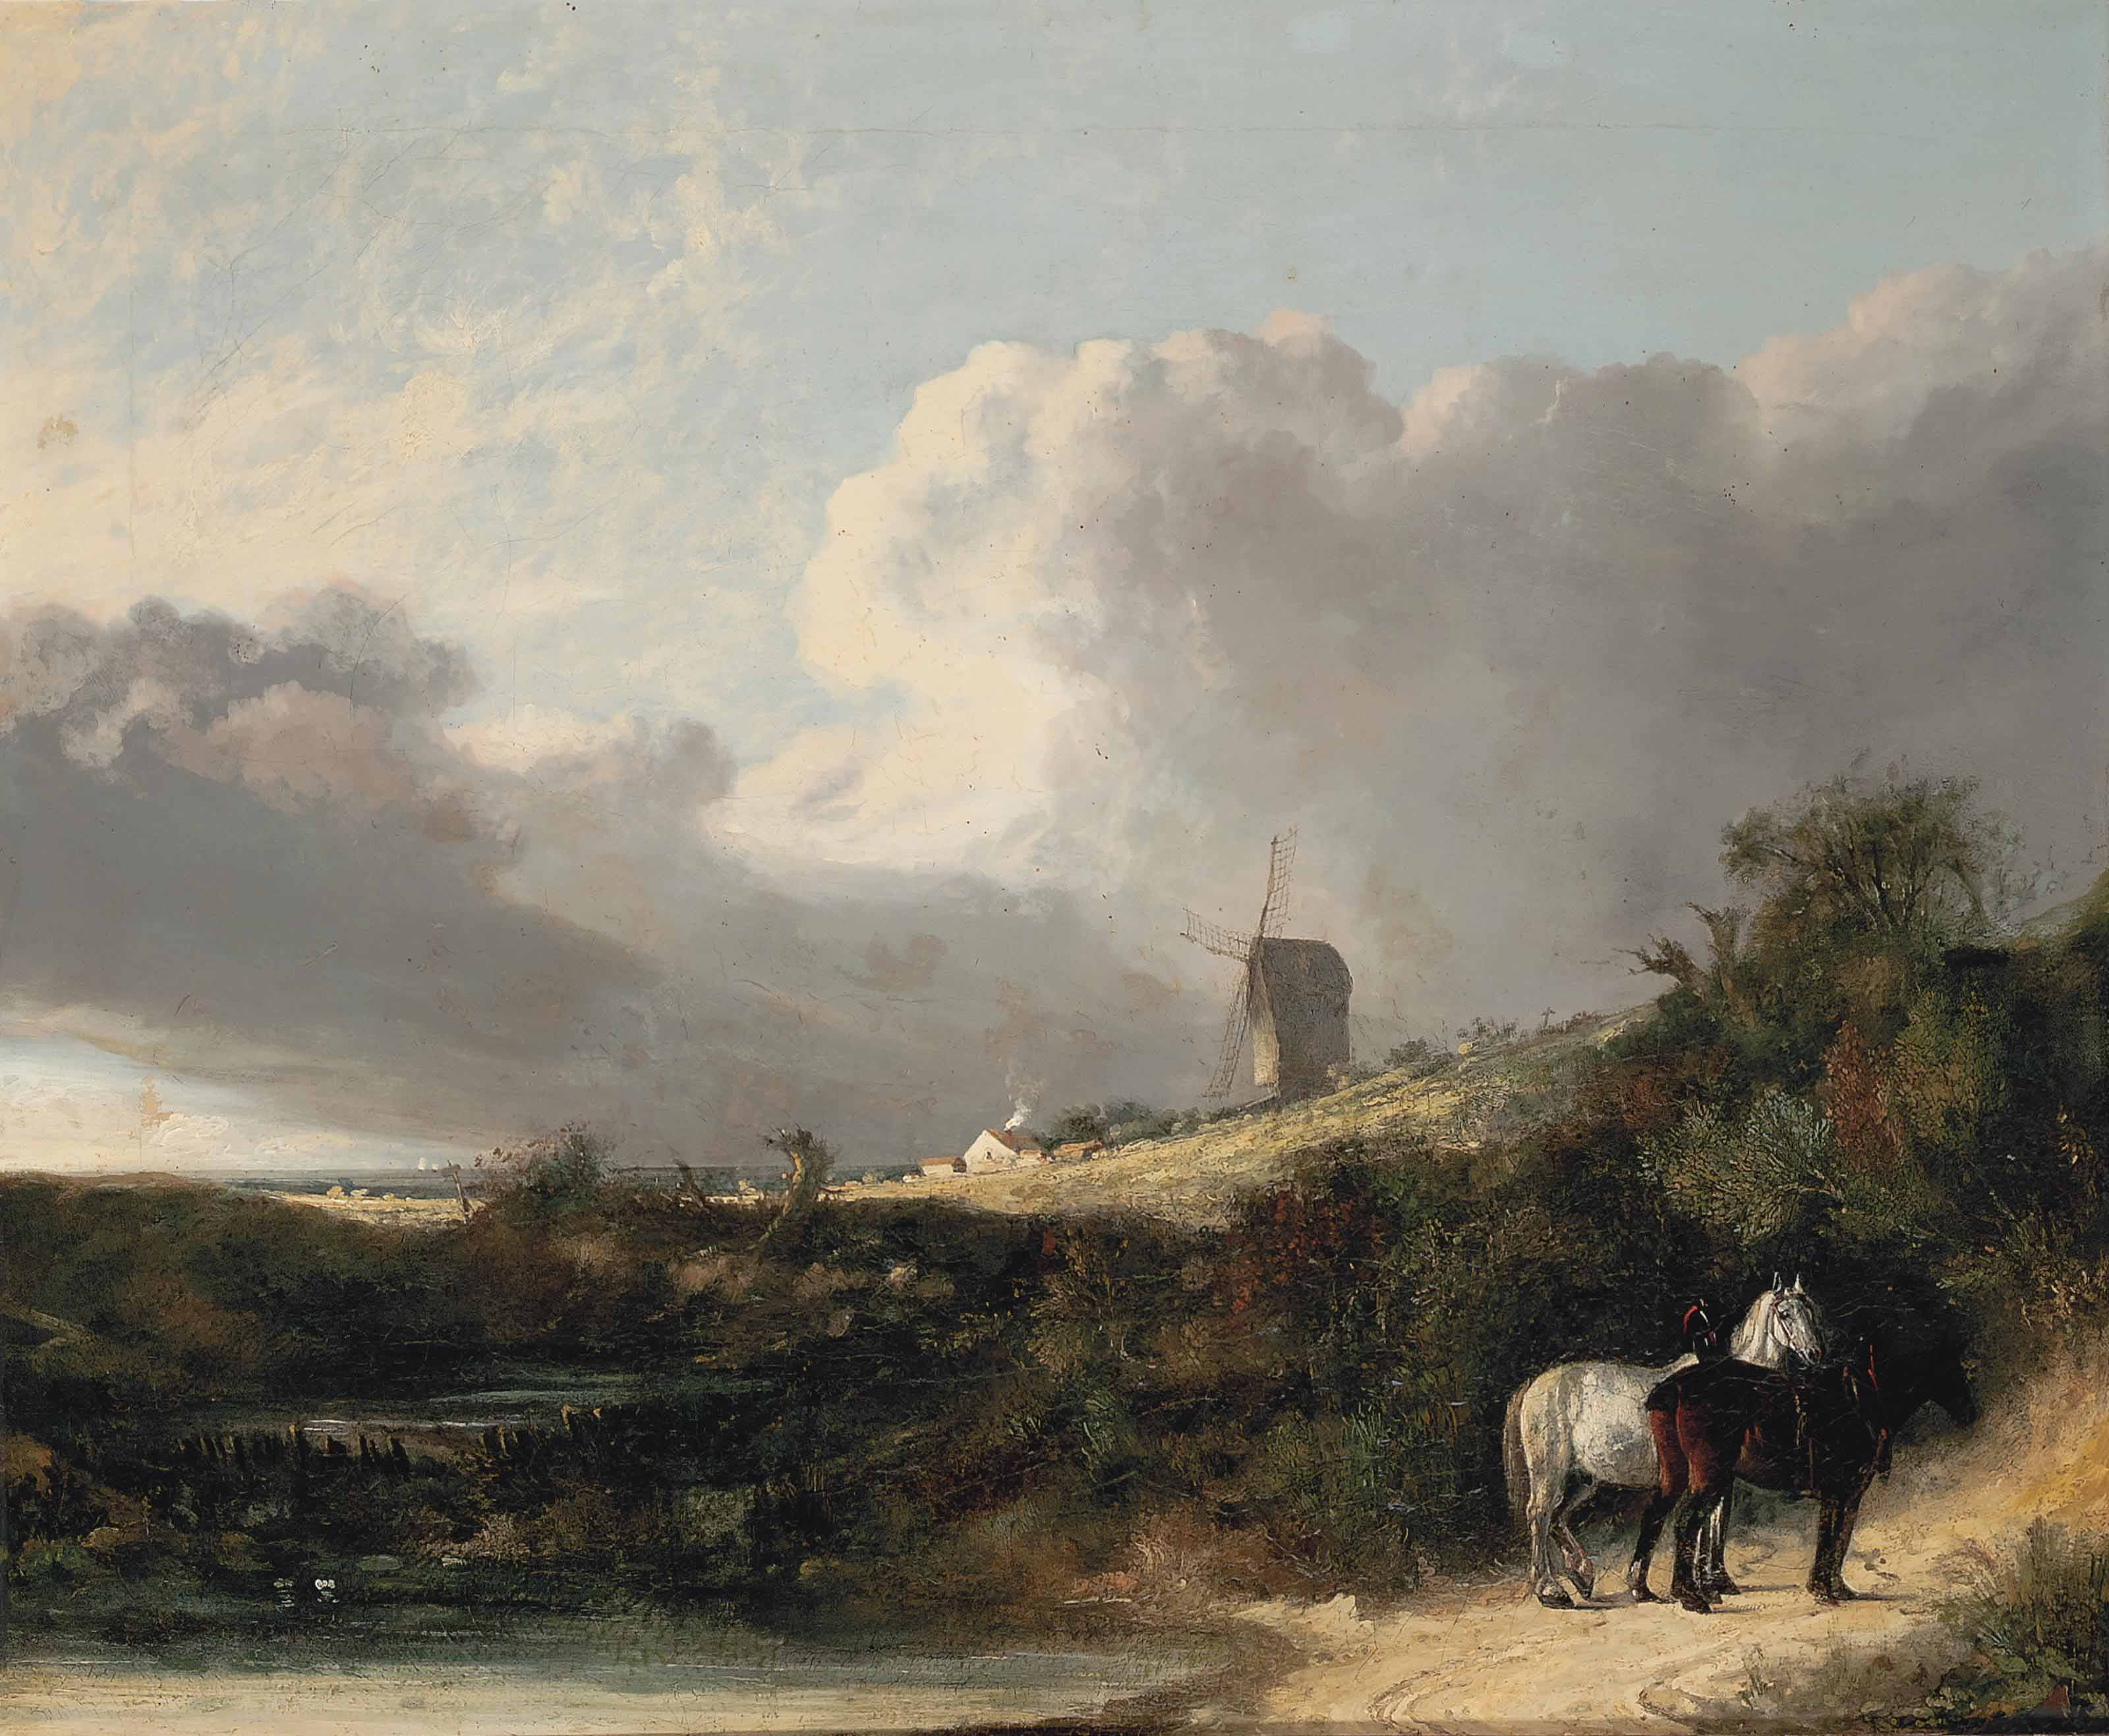 A view near Woodbridge, with two horses by a pond, a windmill beyond